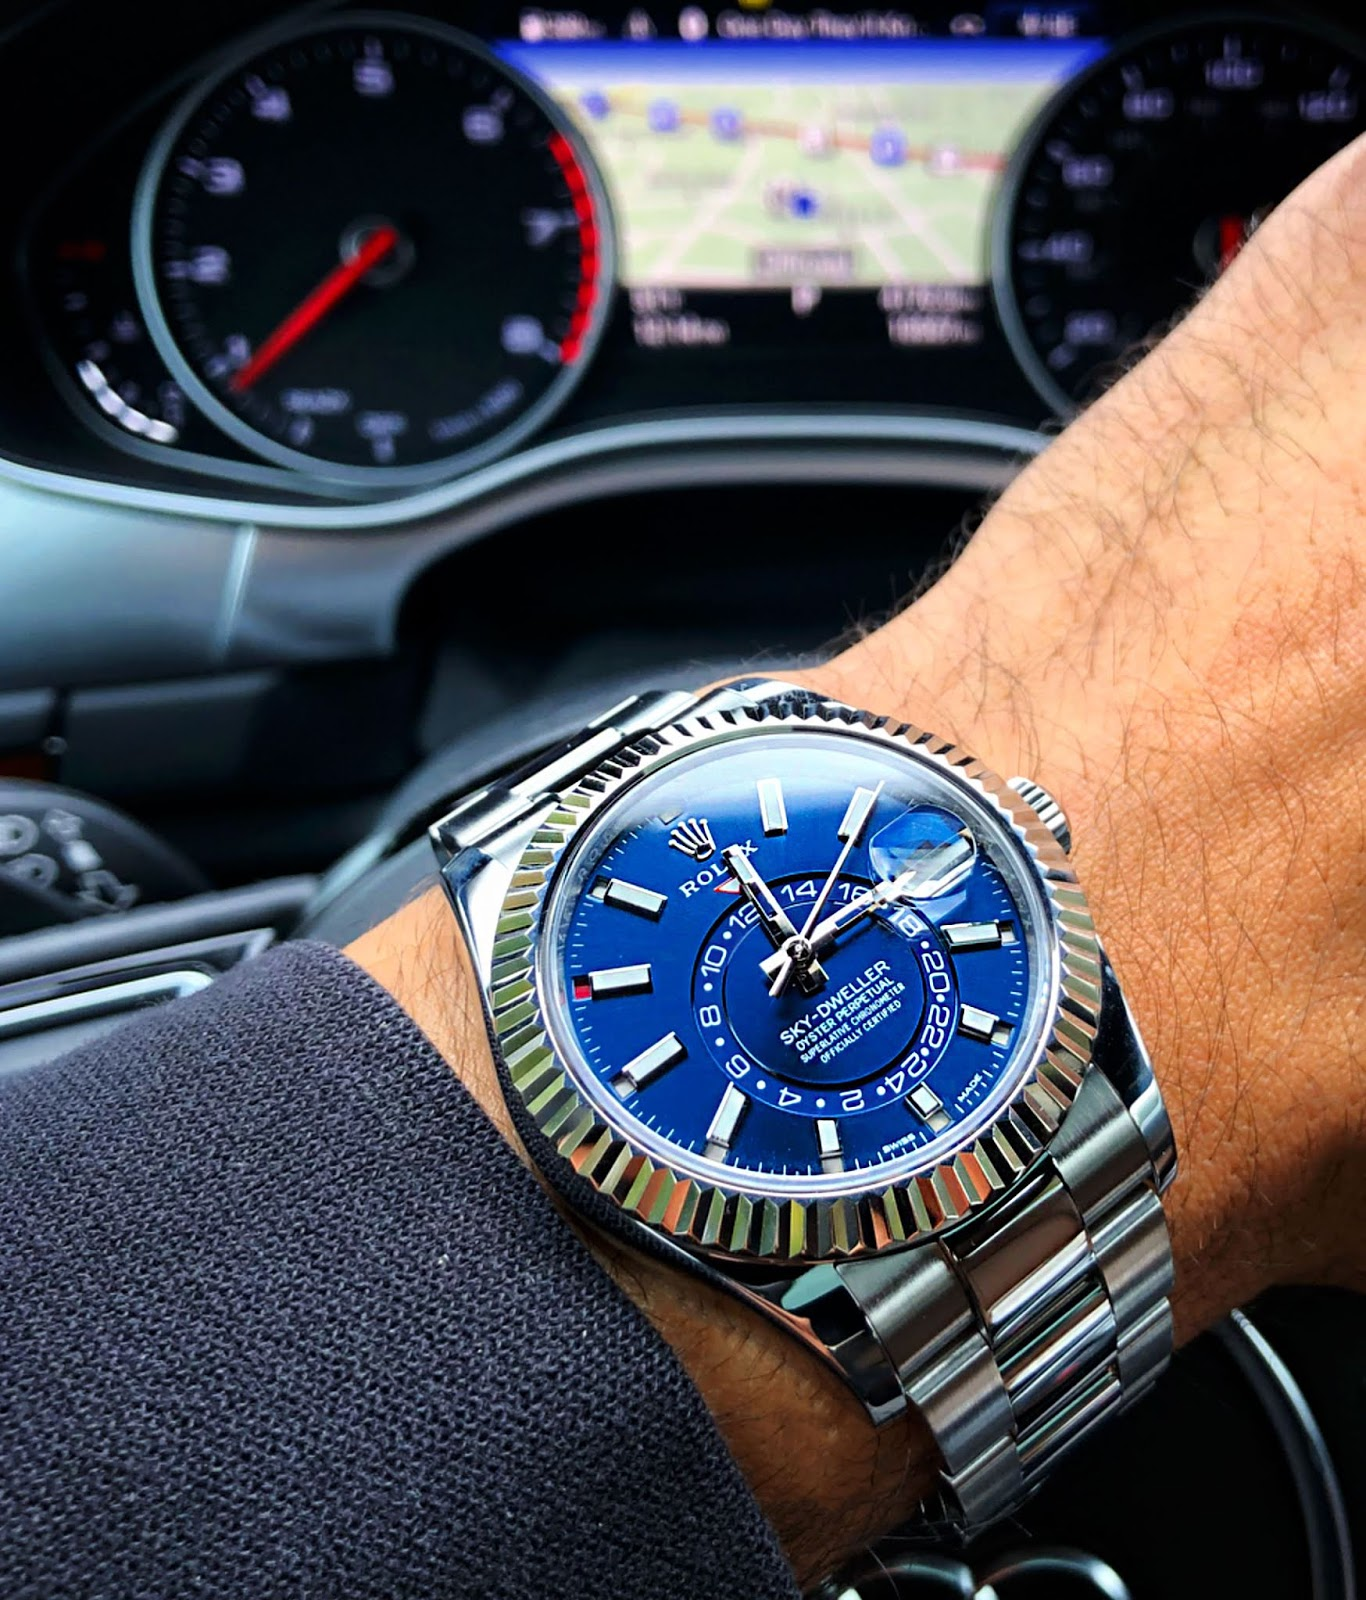 Stainless Rolex Welcome To Rolexmagazine.com...home Of Jake's Rolex World